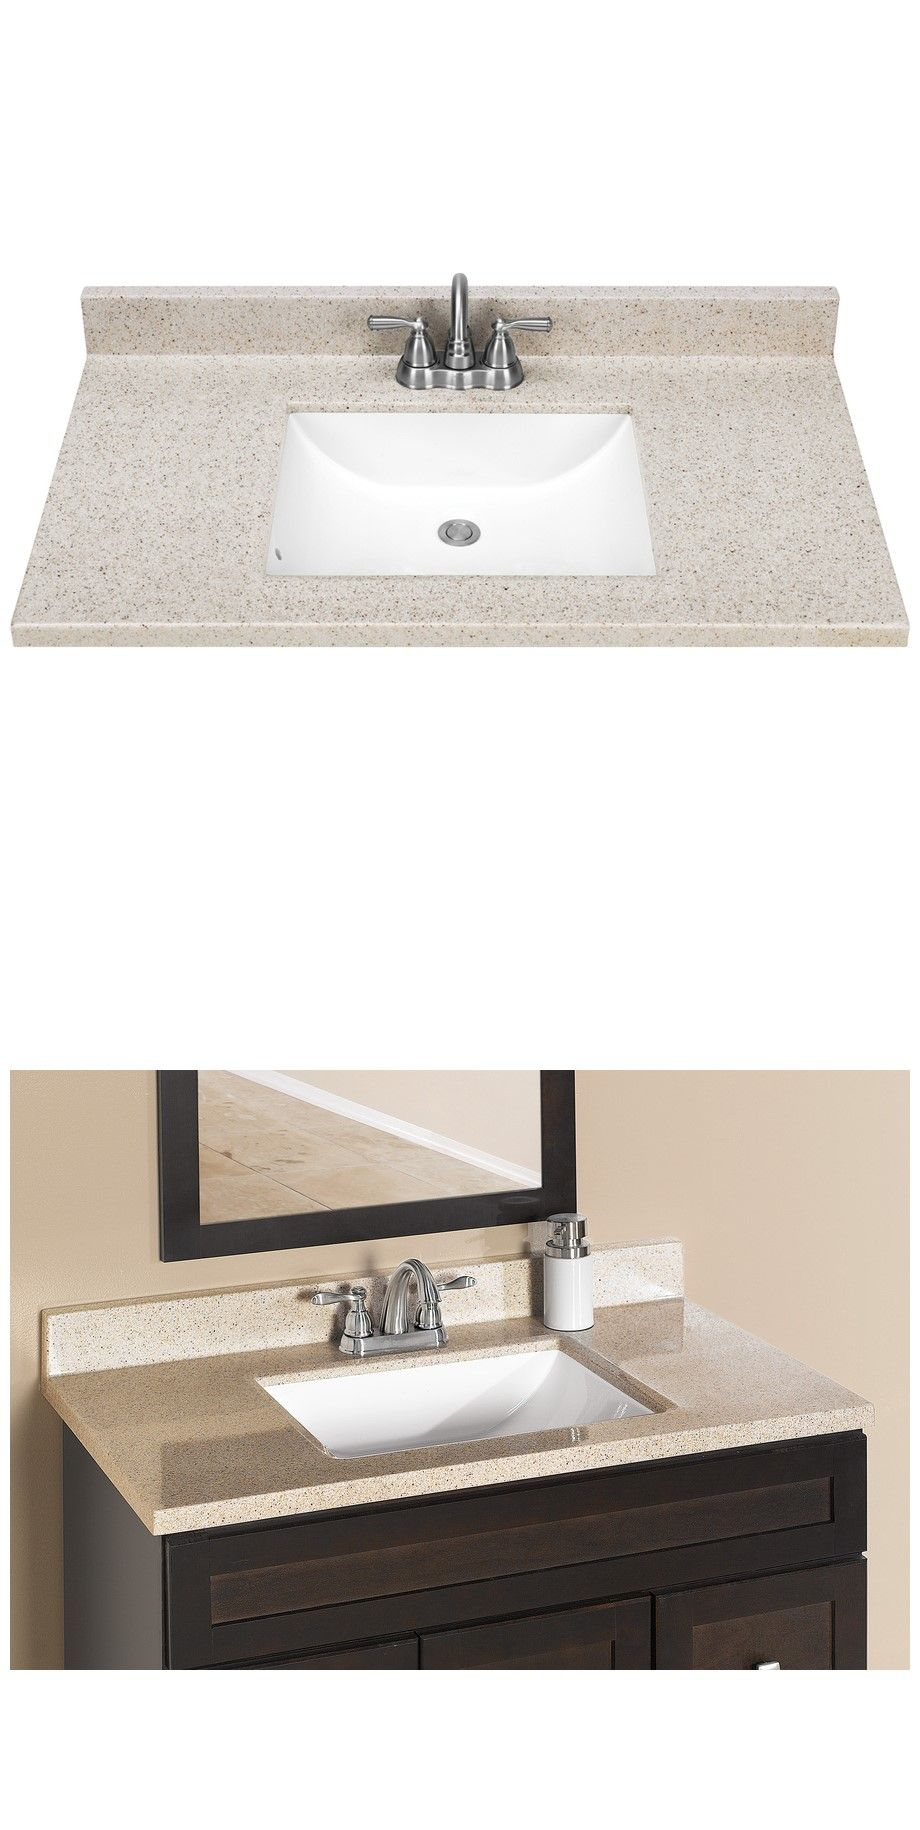 Dune Solid Surface Vanity Top Is Durable White Integral